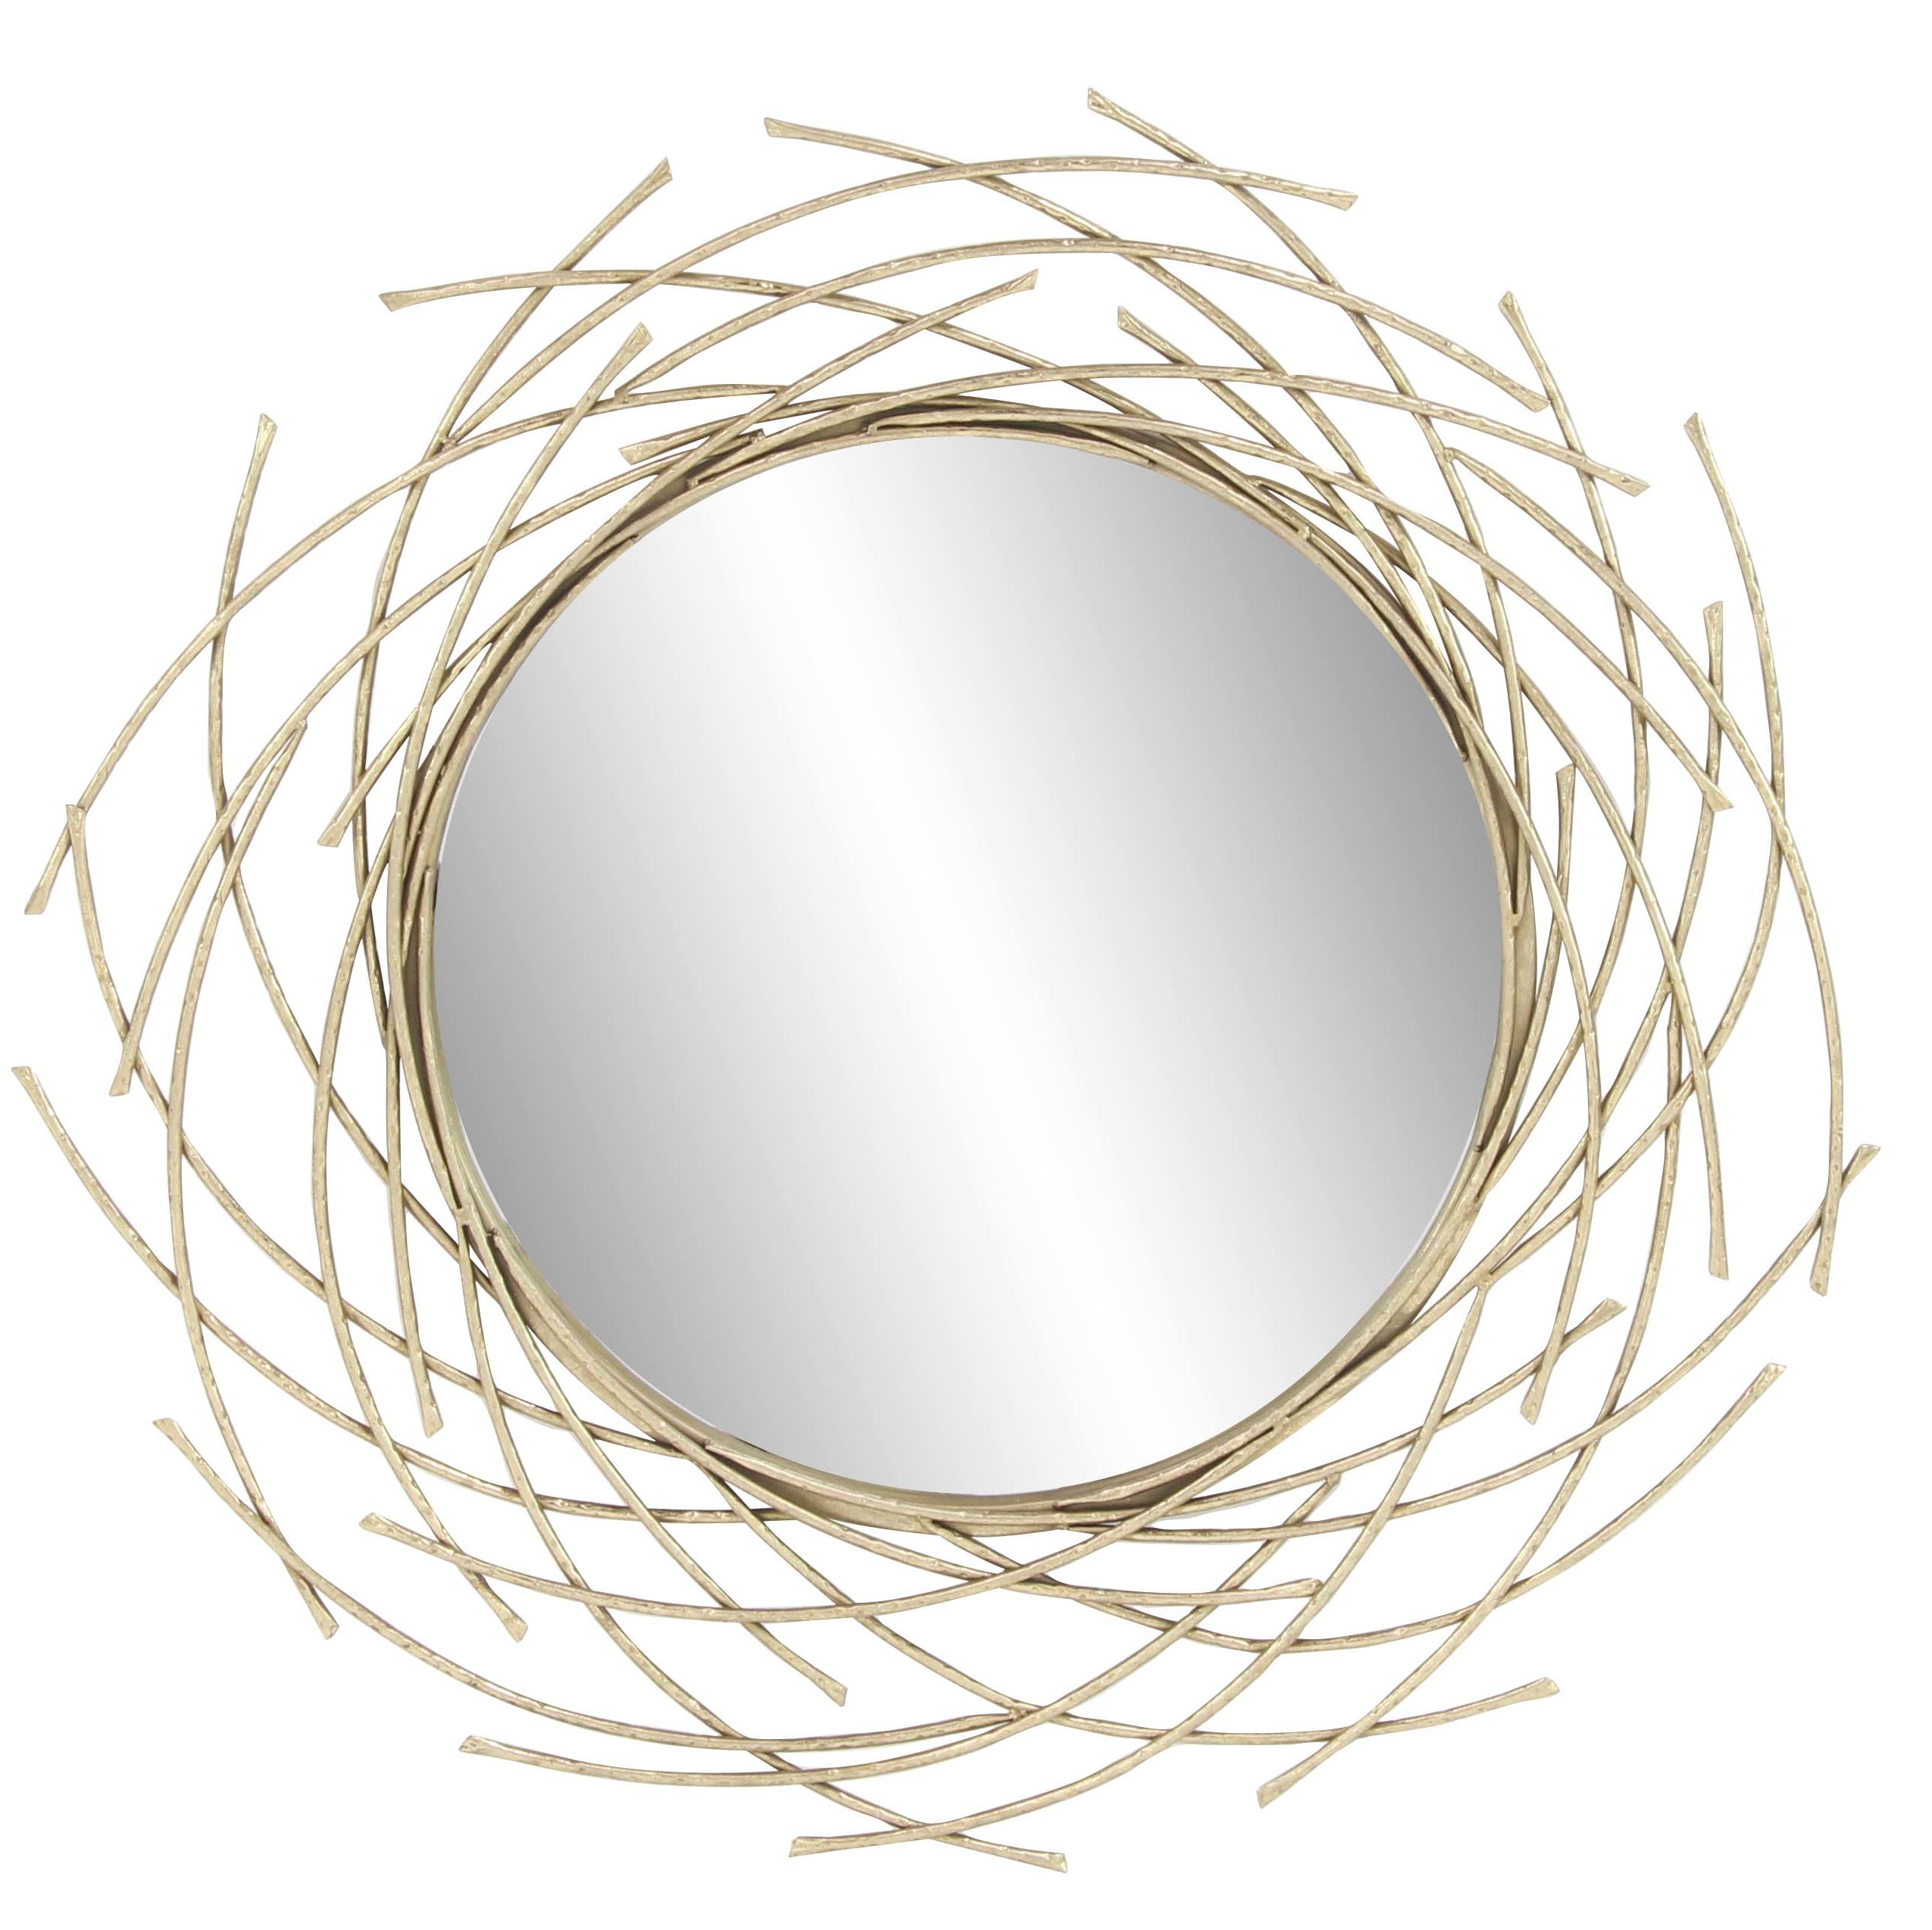 Newtown Accent Mirrors Pertaining To 2020 Modern Overlapping Arc Accent Mirror (View 15 of 20)